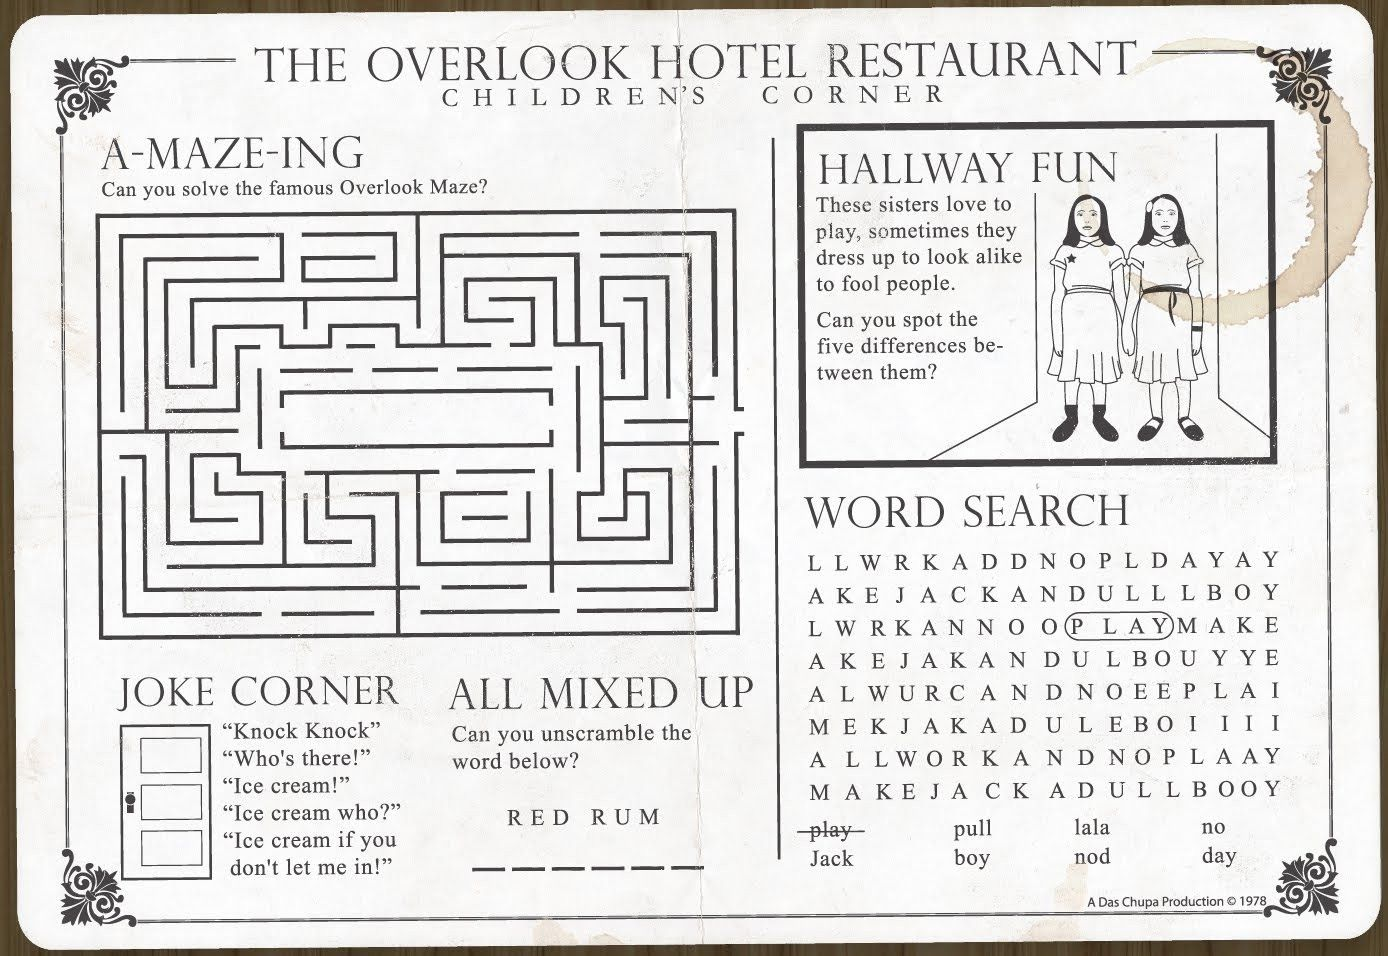 Overlook Restaurant Children S Menu Don T Their Great Kids Prices The Where Know Place In Corner